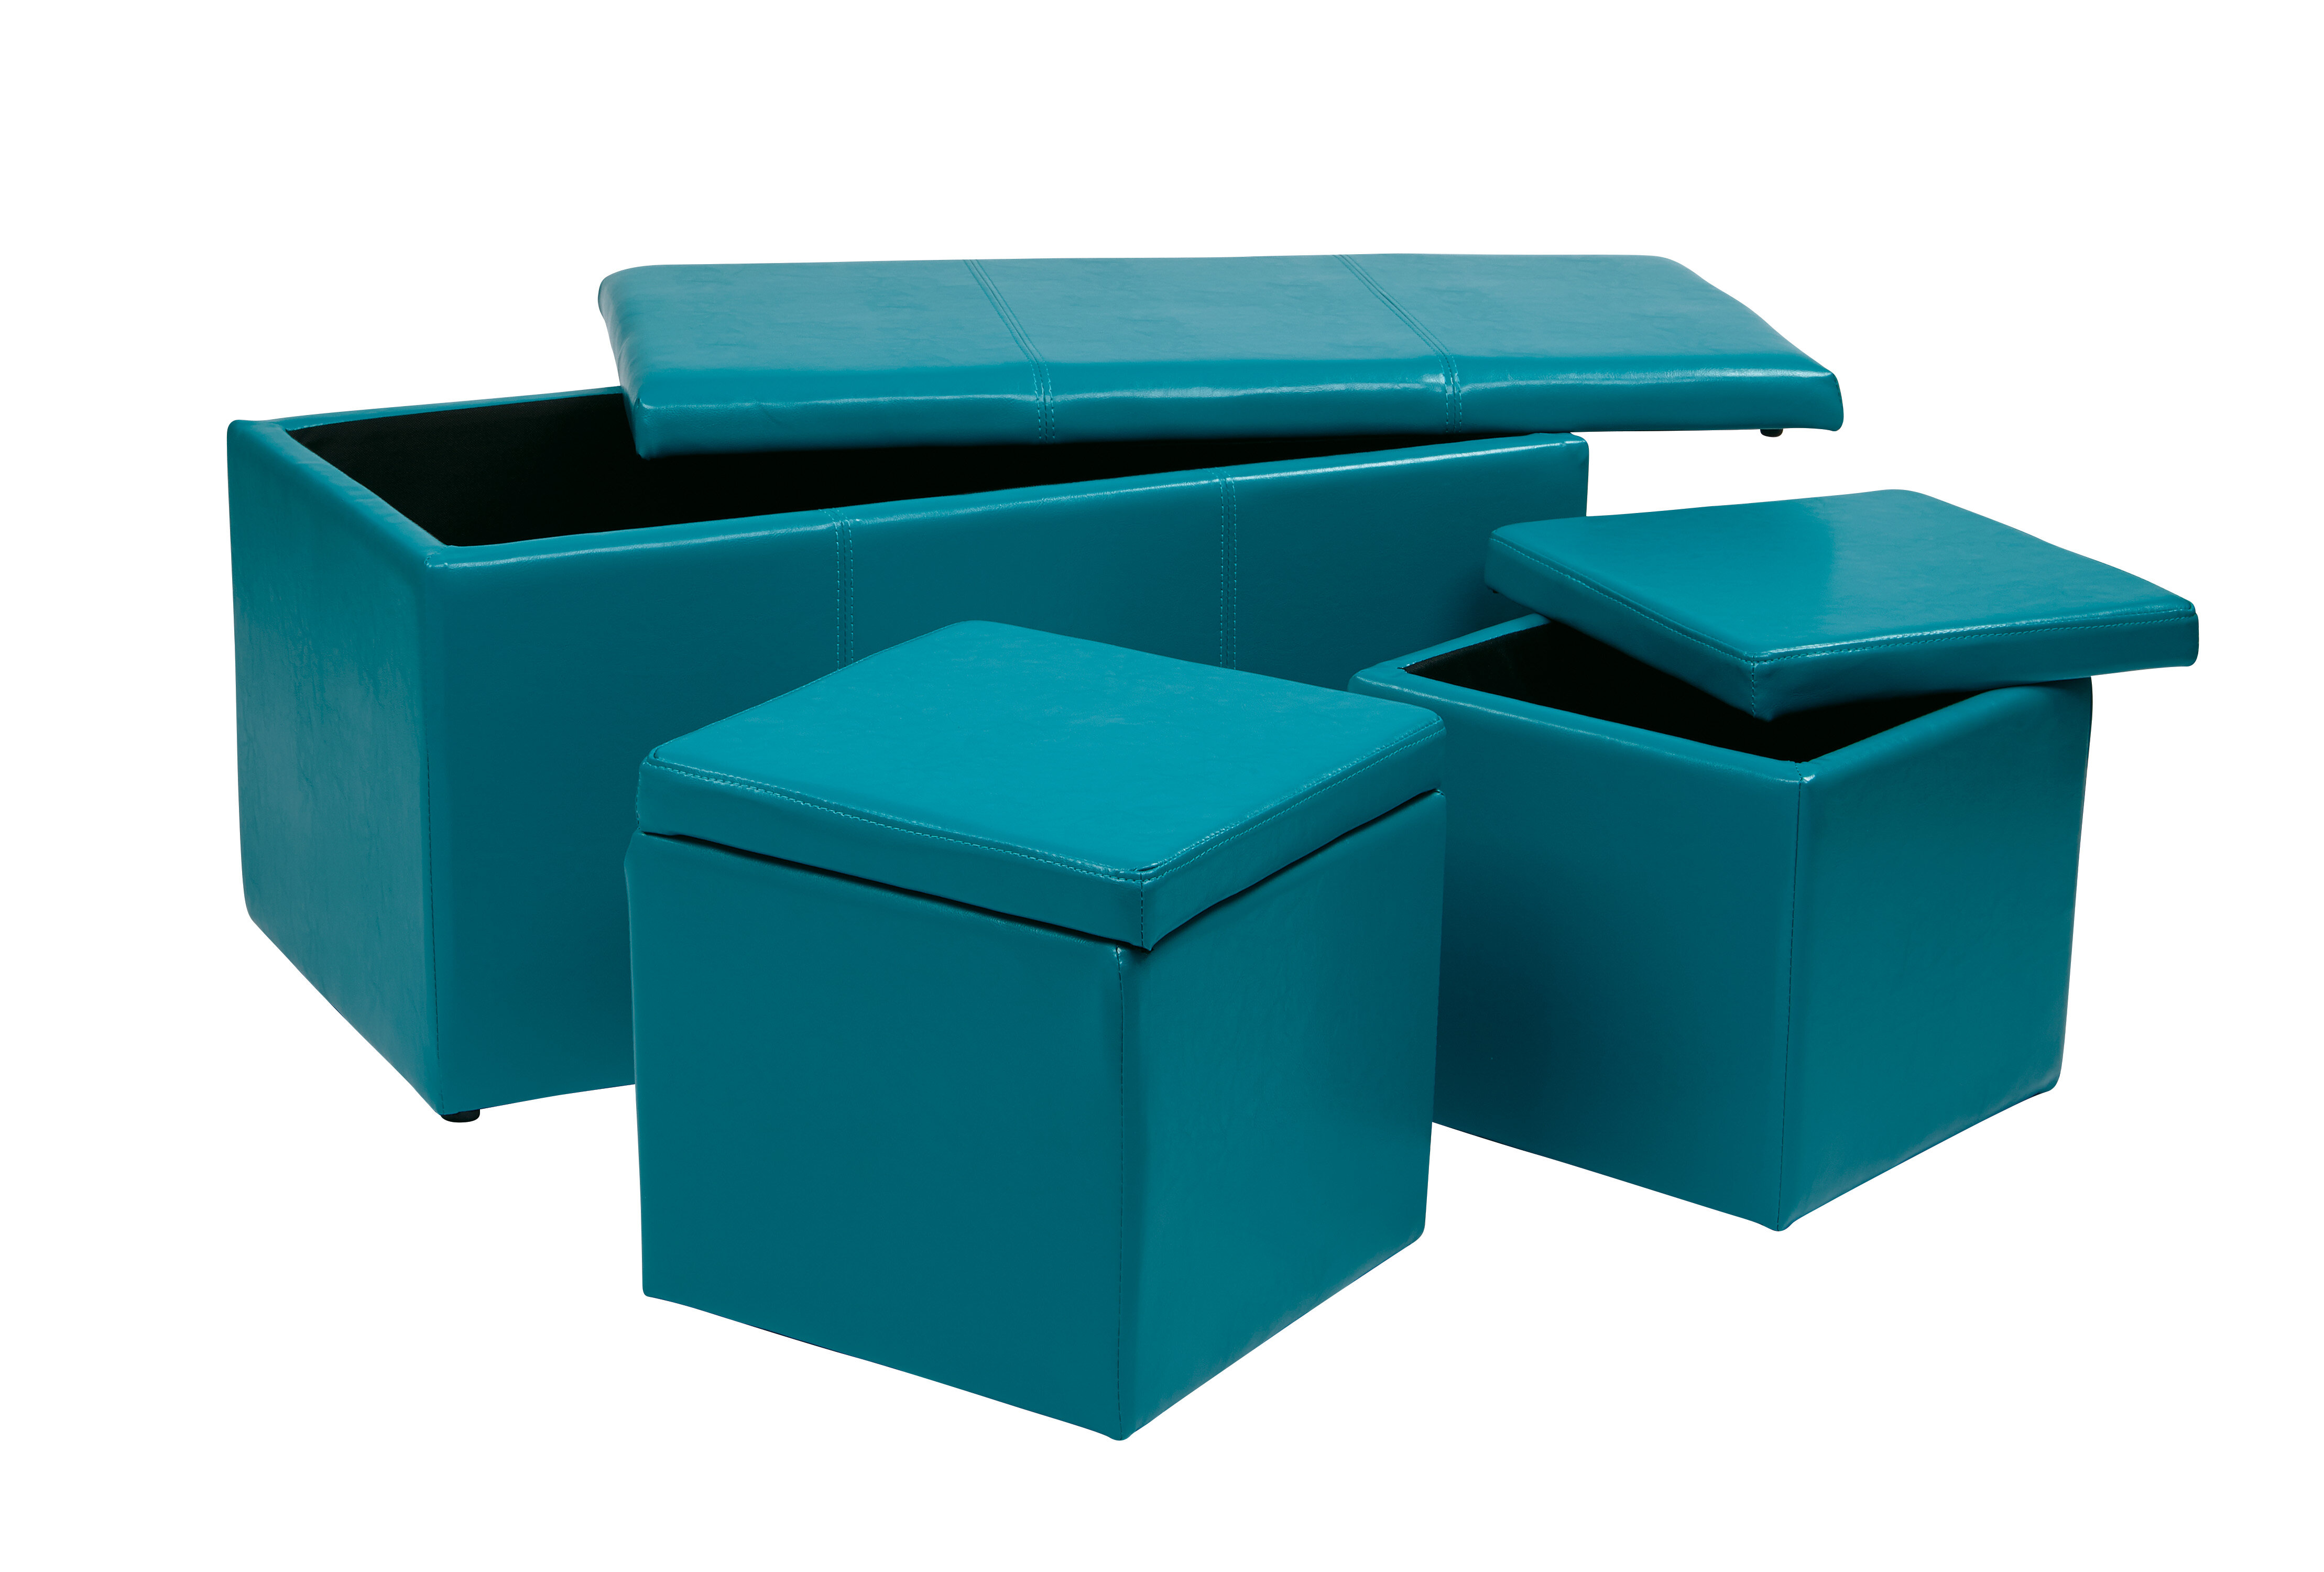 Stupendous Elverton 3 Piece Storage Ottoman Set Gmtry Best Dining Table And Chair Ideas Images Gmtryco